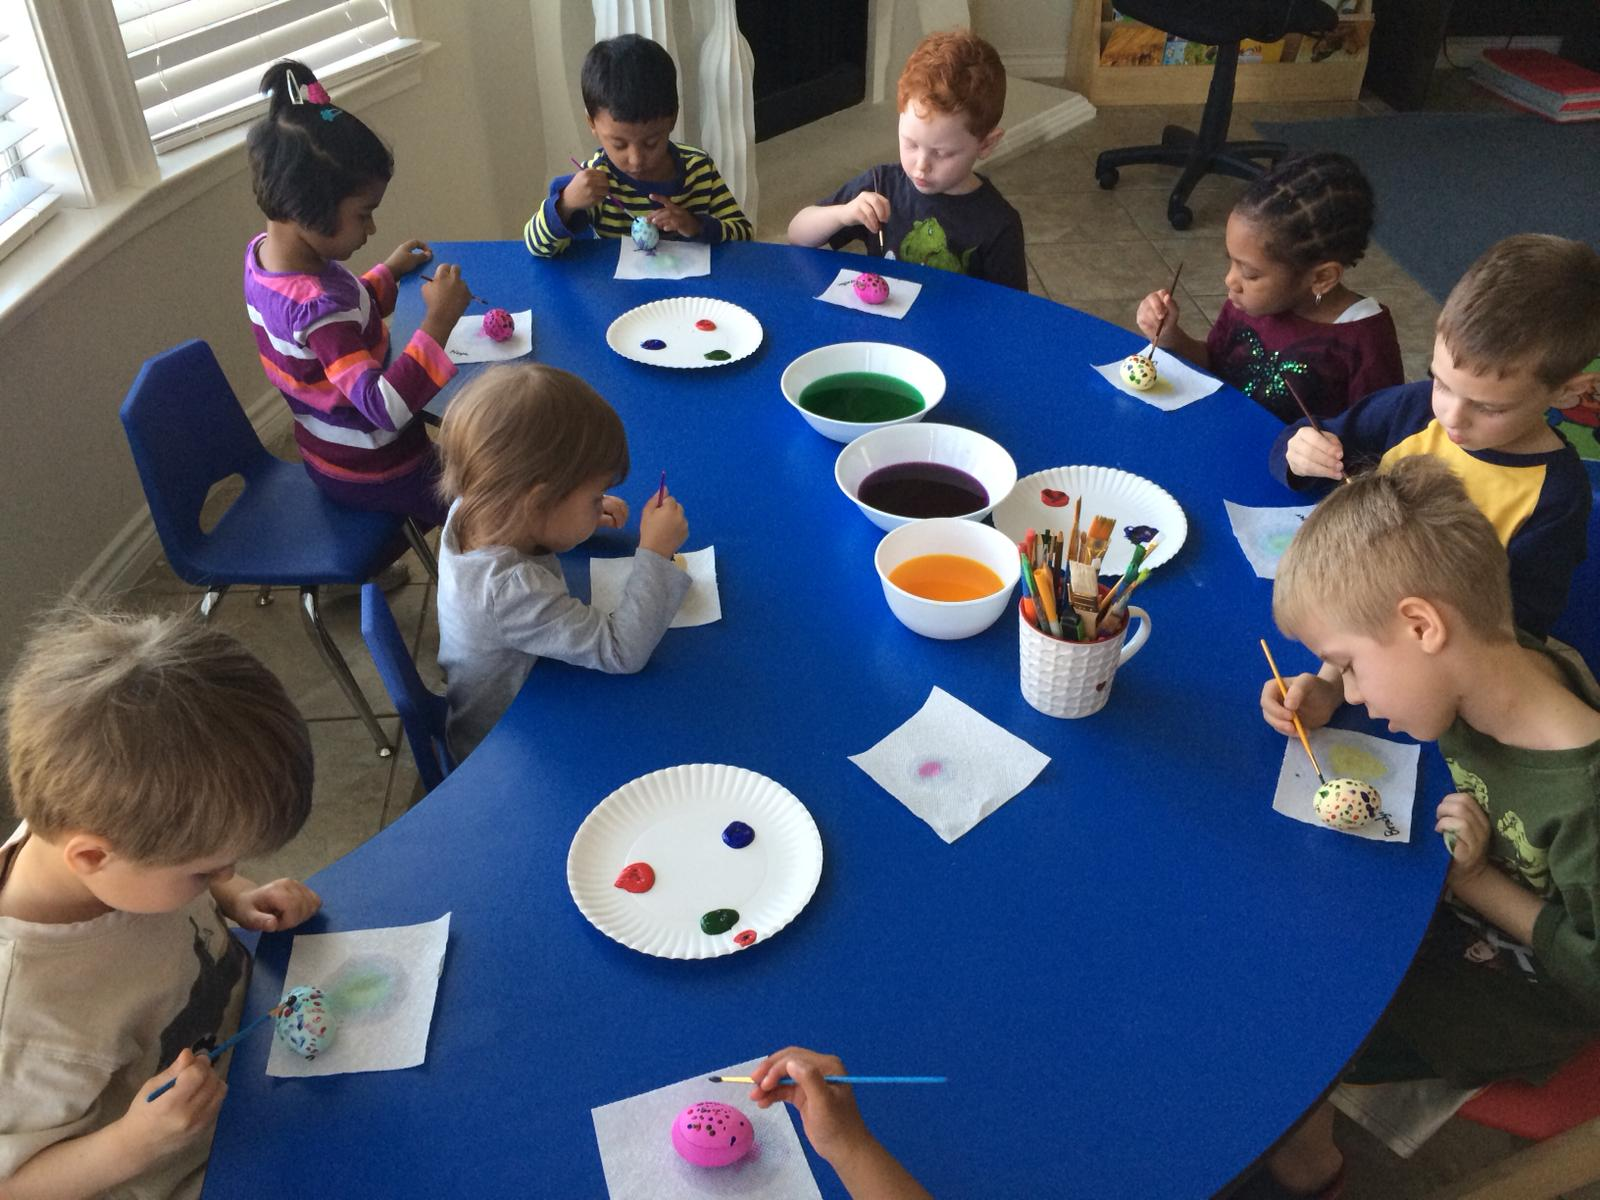 Kids sitting at a table and painting